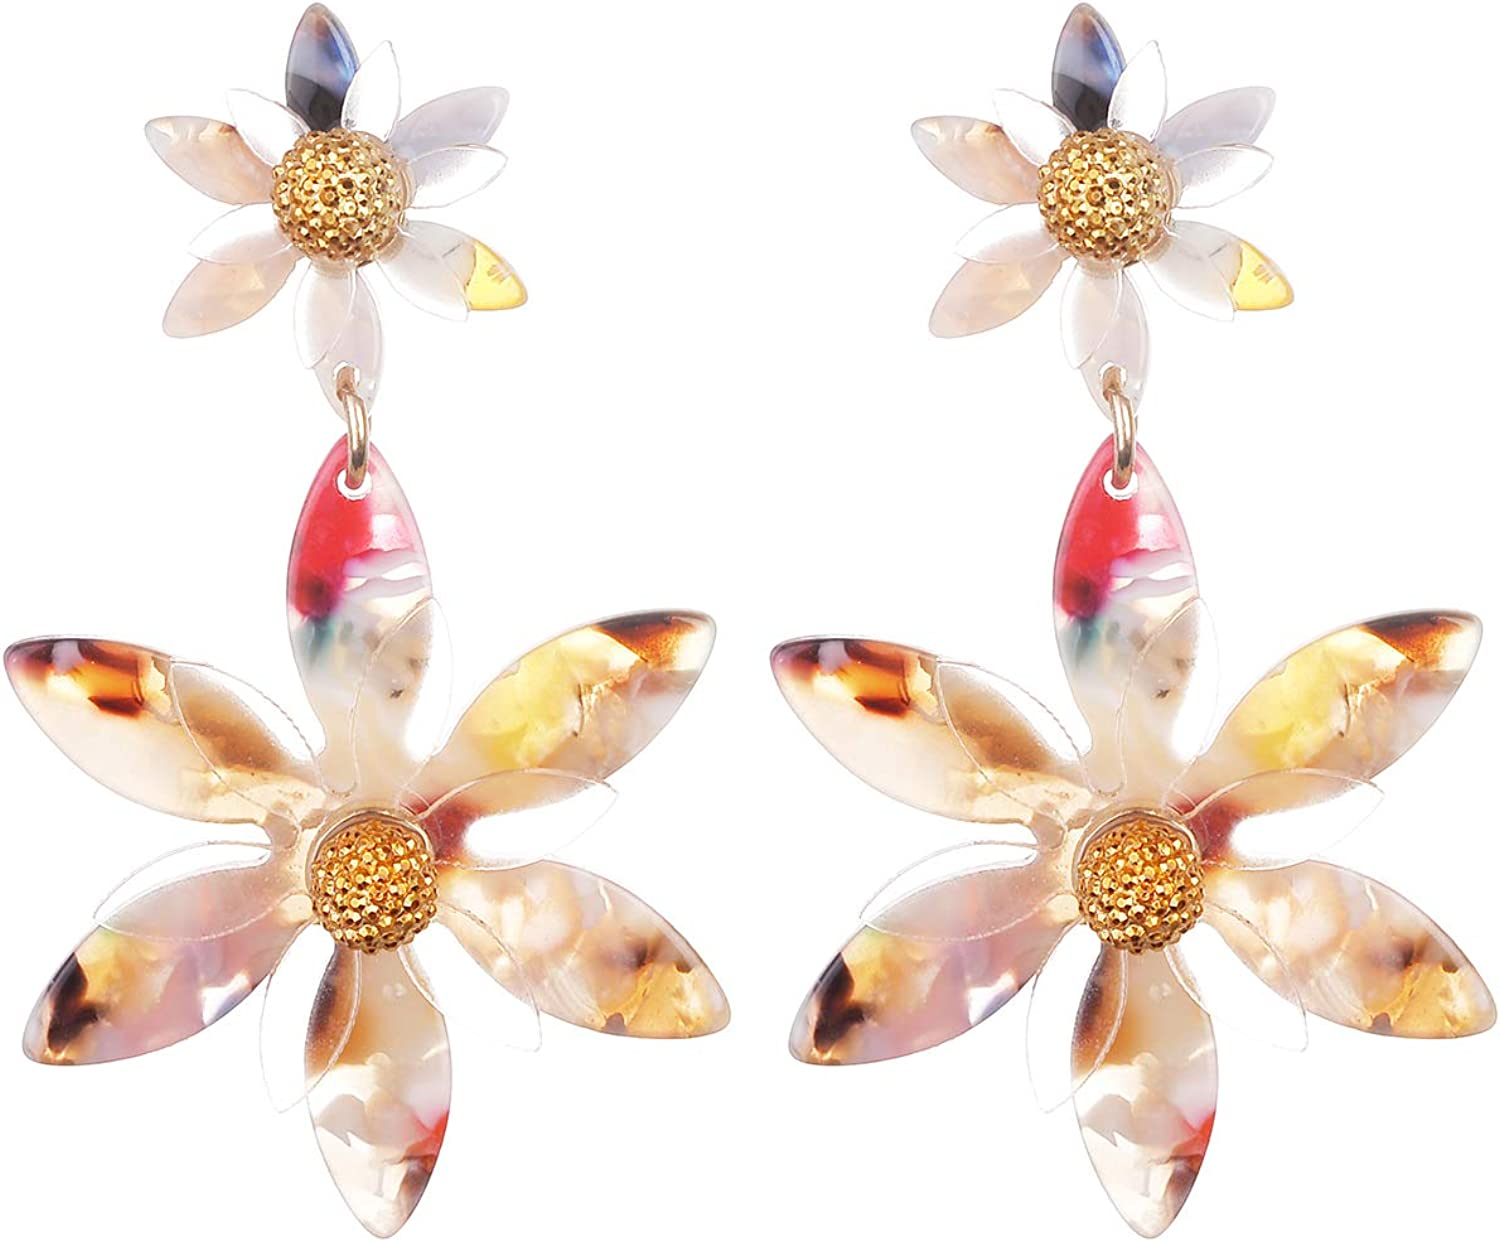 Nicole Miller New York Two Flowers Different Sizes Off-white Acrylic Transparent GoldDangle Earrings